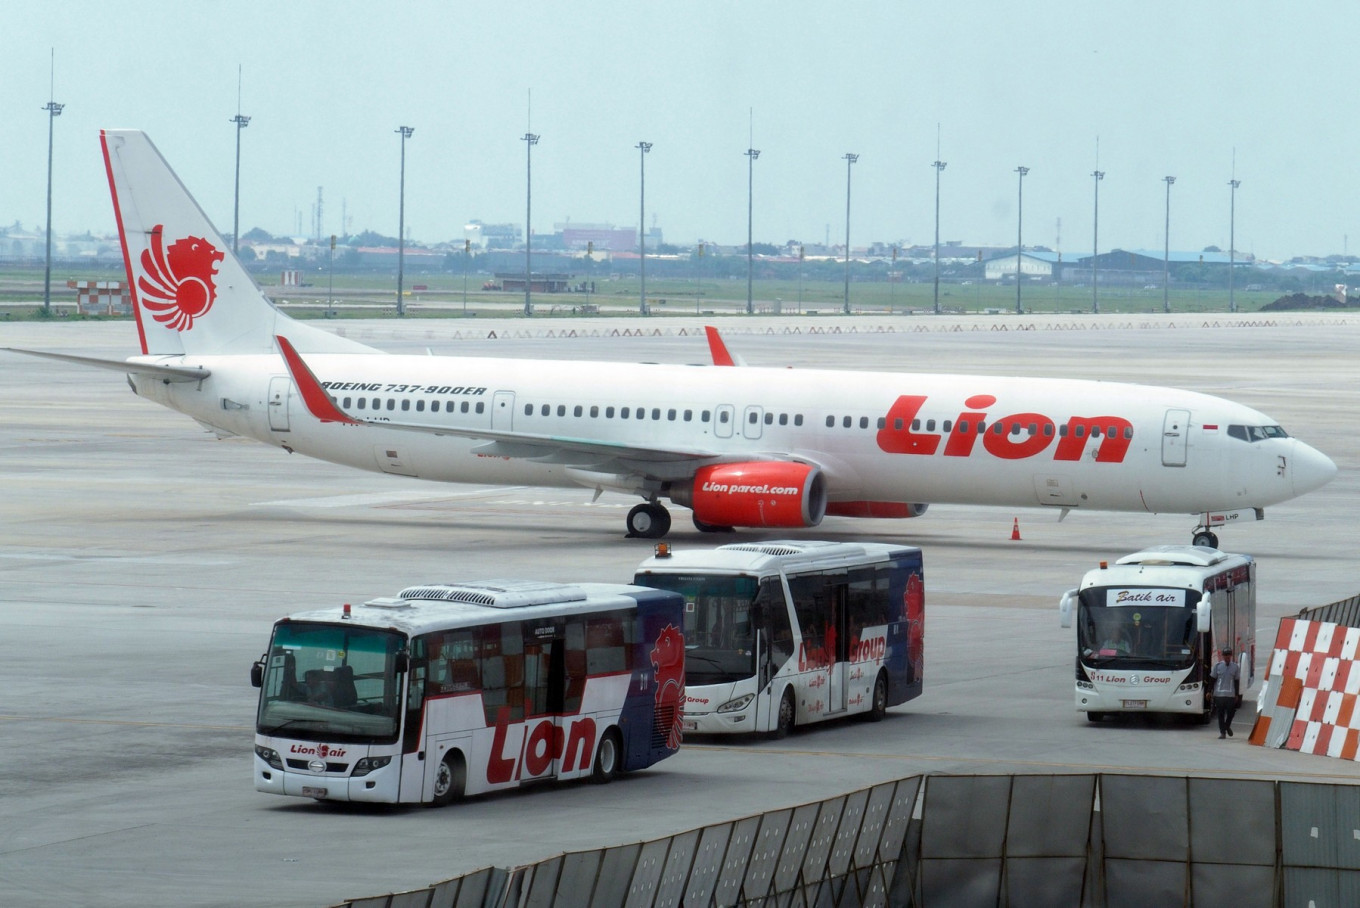 Lion Air Group offers rapid COVID-19 testing service